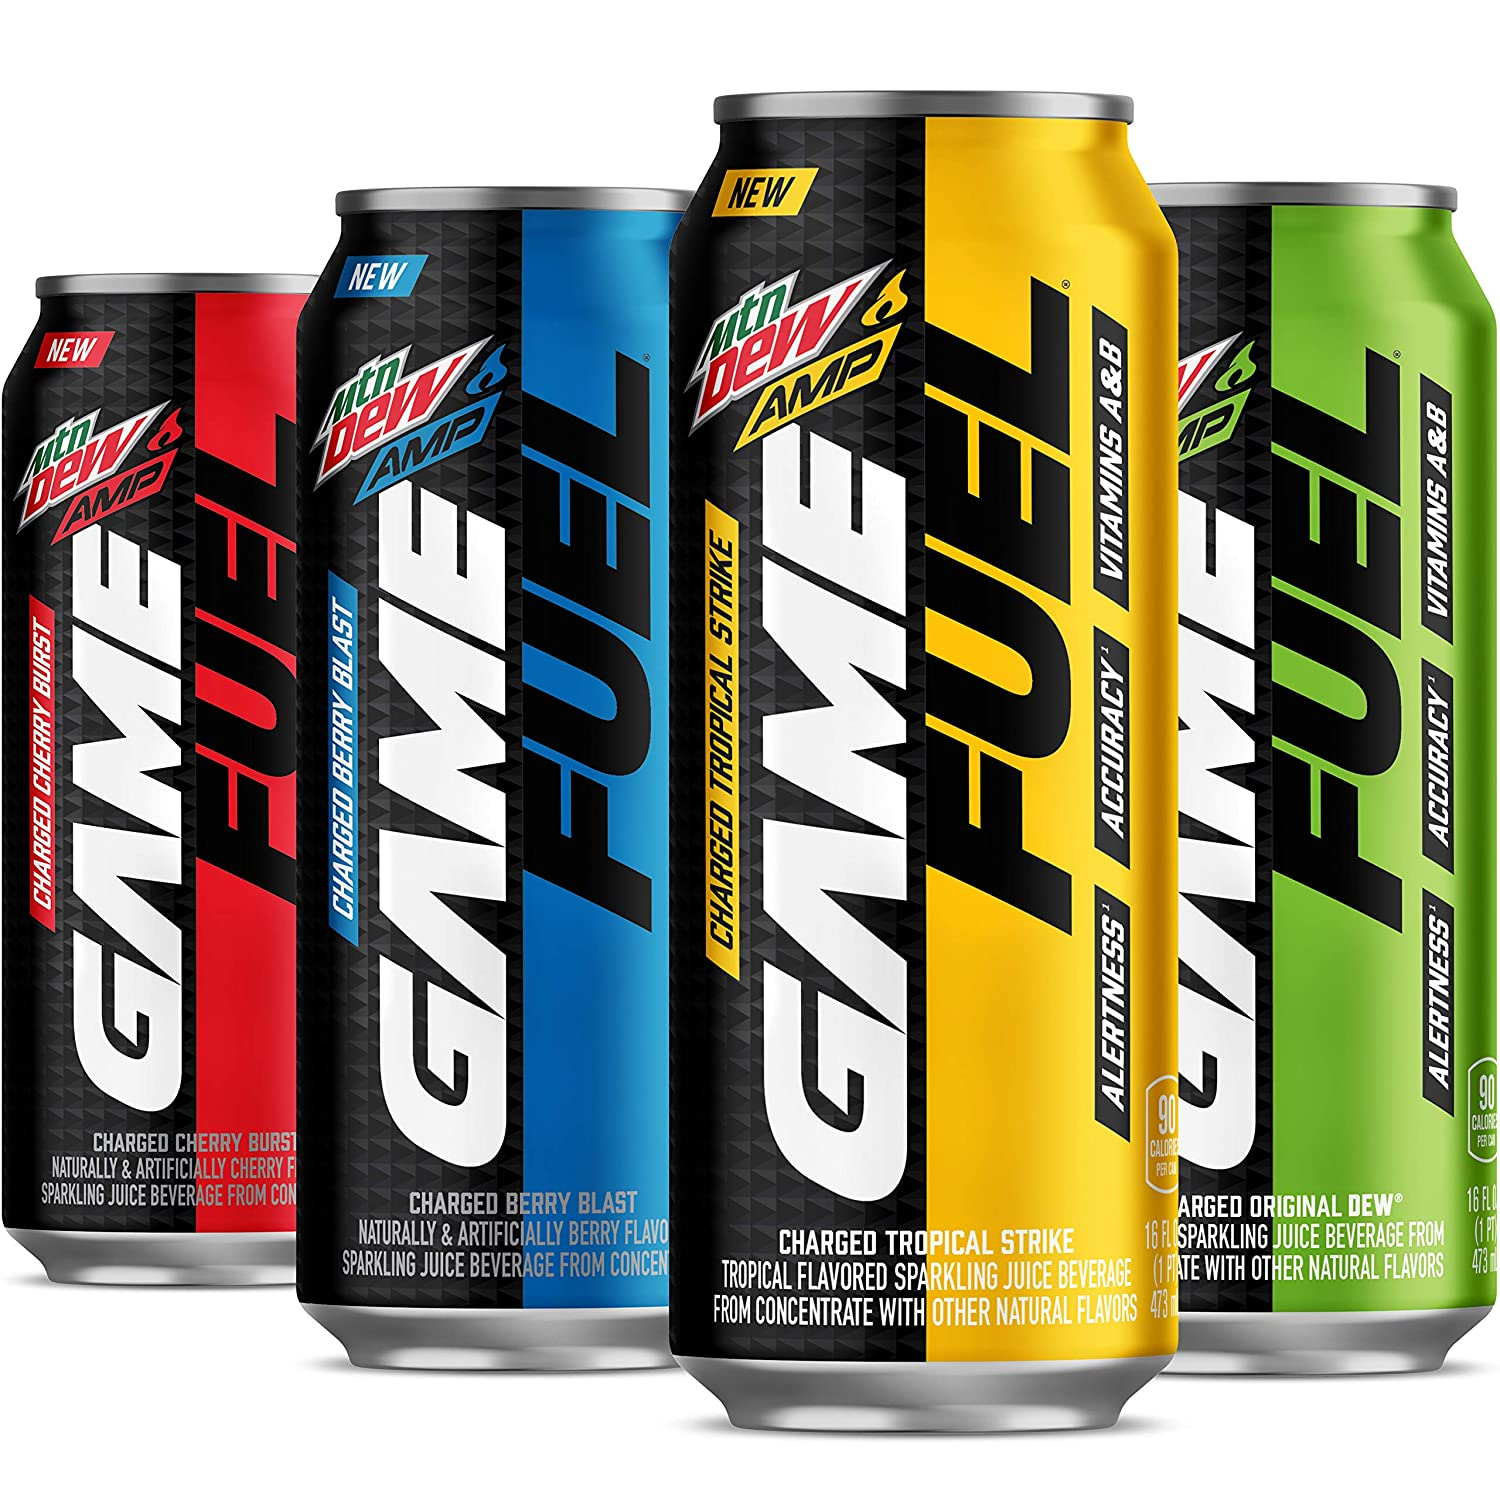 Mountain Dew AMP GAME FUEL, 4 Flavor Variety Pack, 16 fl oz  cans (12 Pack)